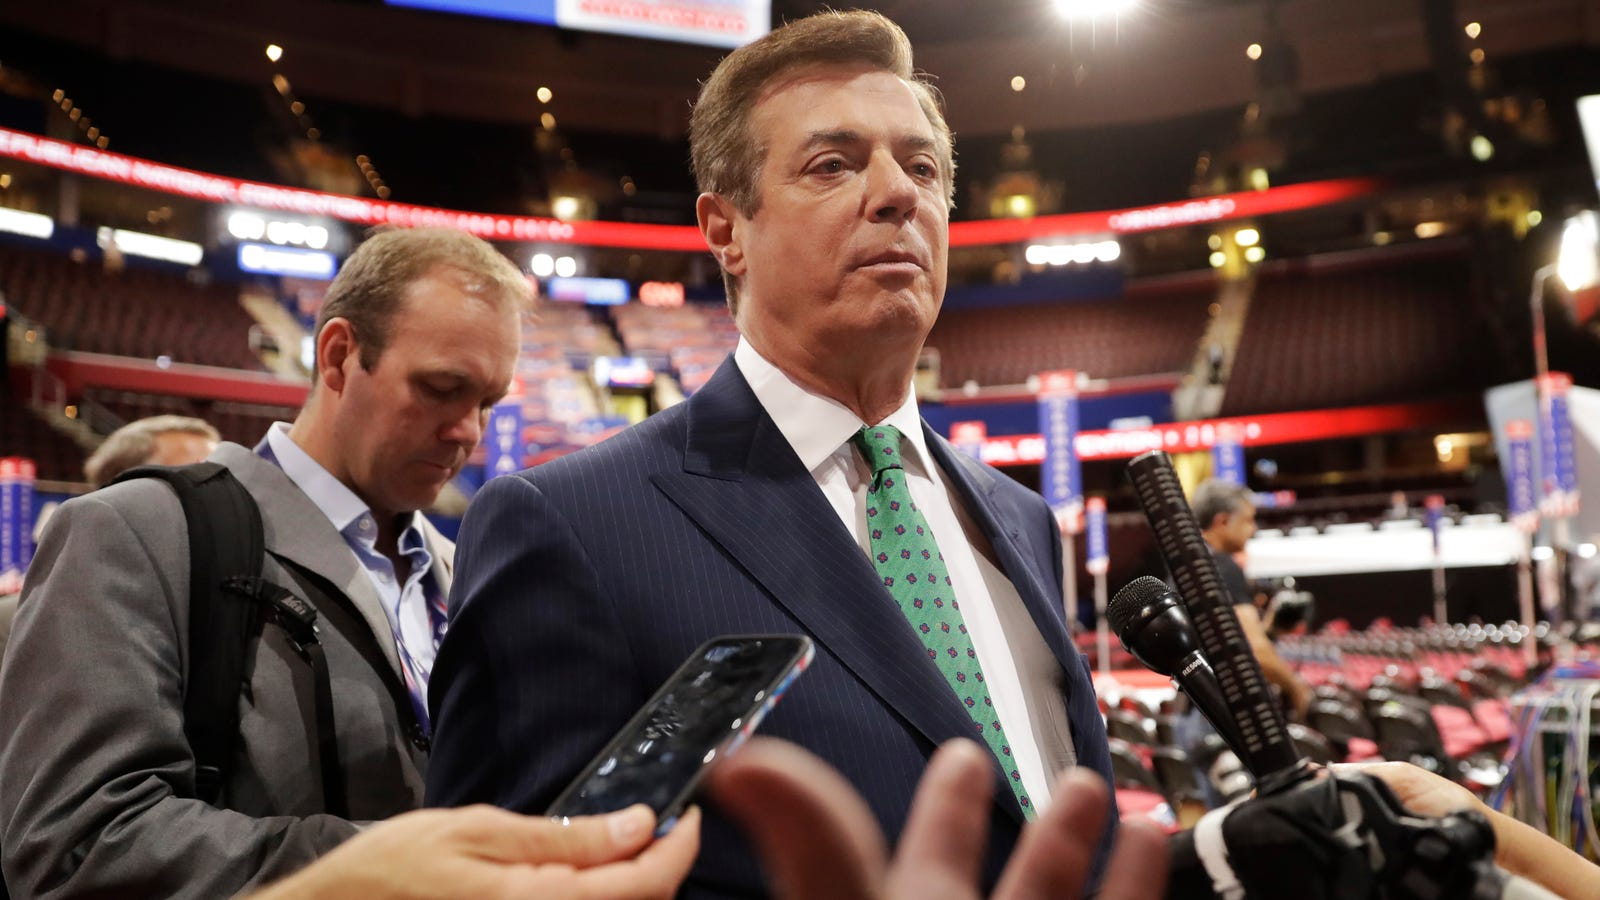 Report: Authorities Wiretapped Trump Campaign Manager Paul Manafort Twice